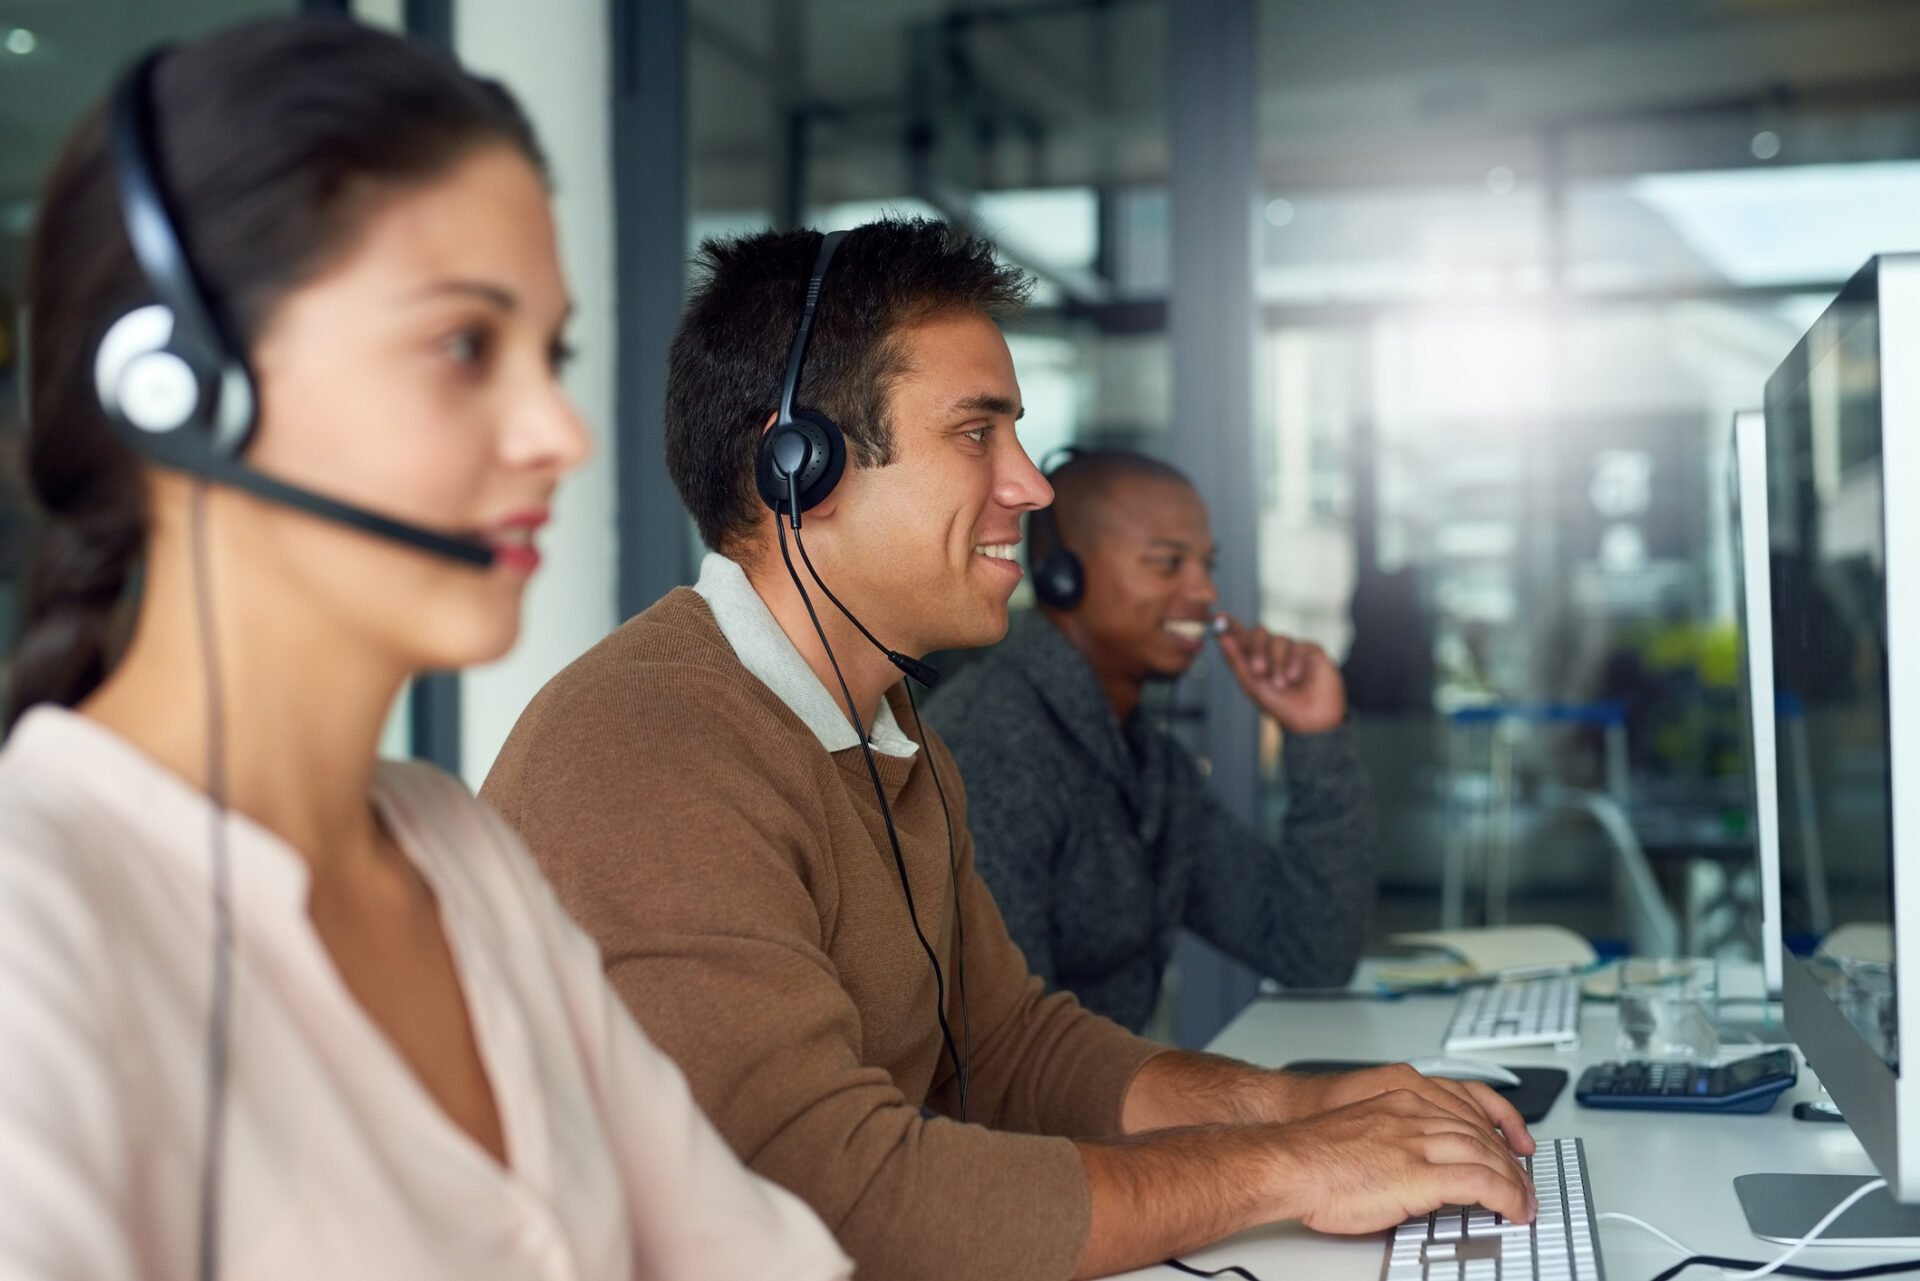 Call center employees at computers demonstrate employee engagement in customer service